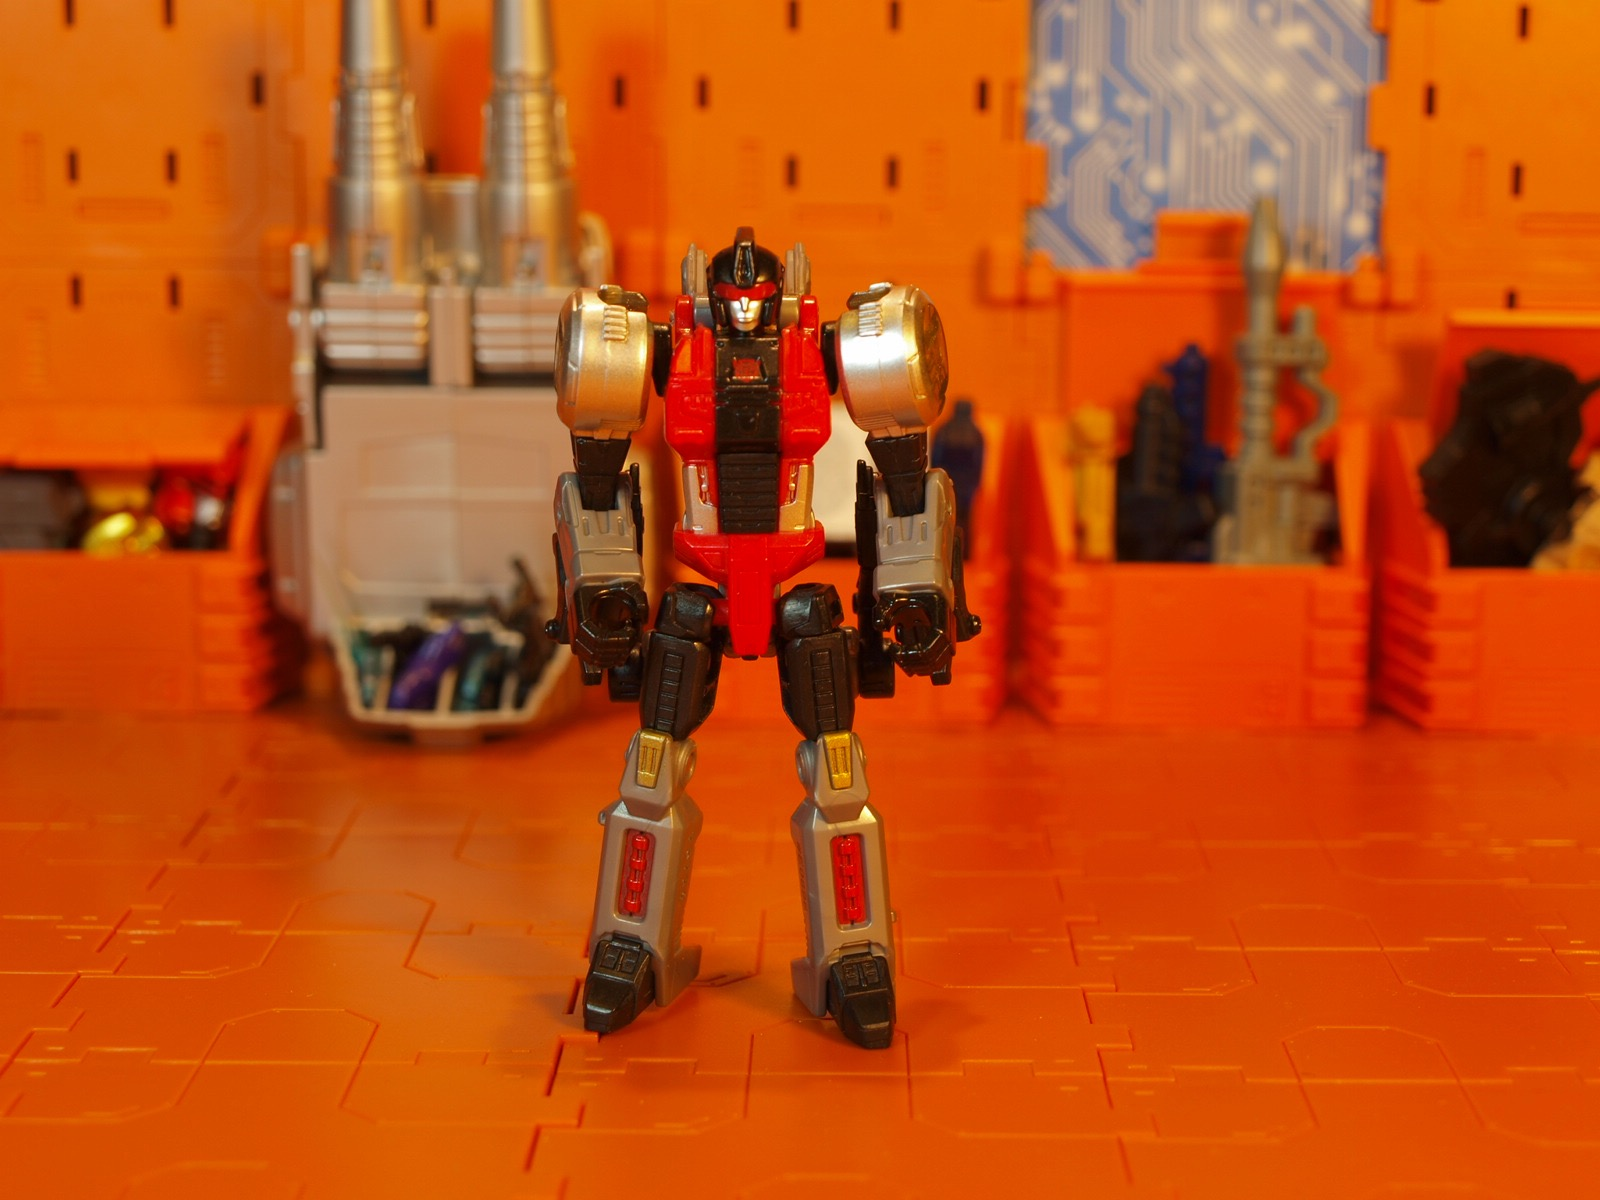 Slash robot mode